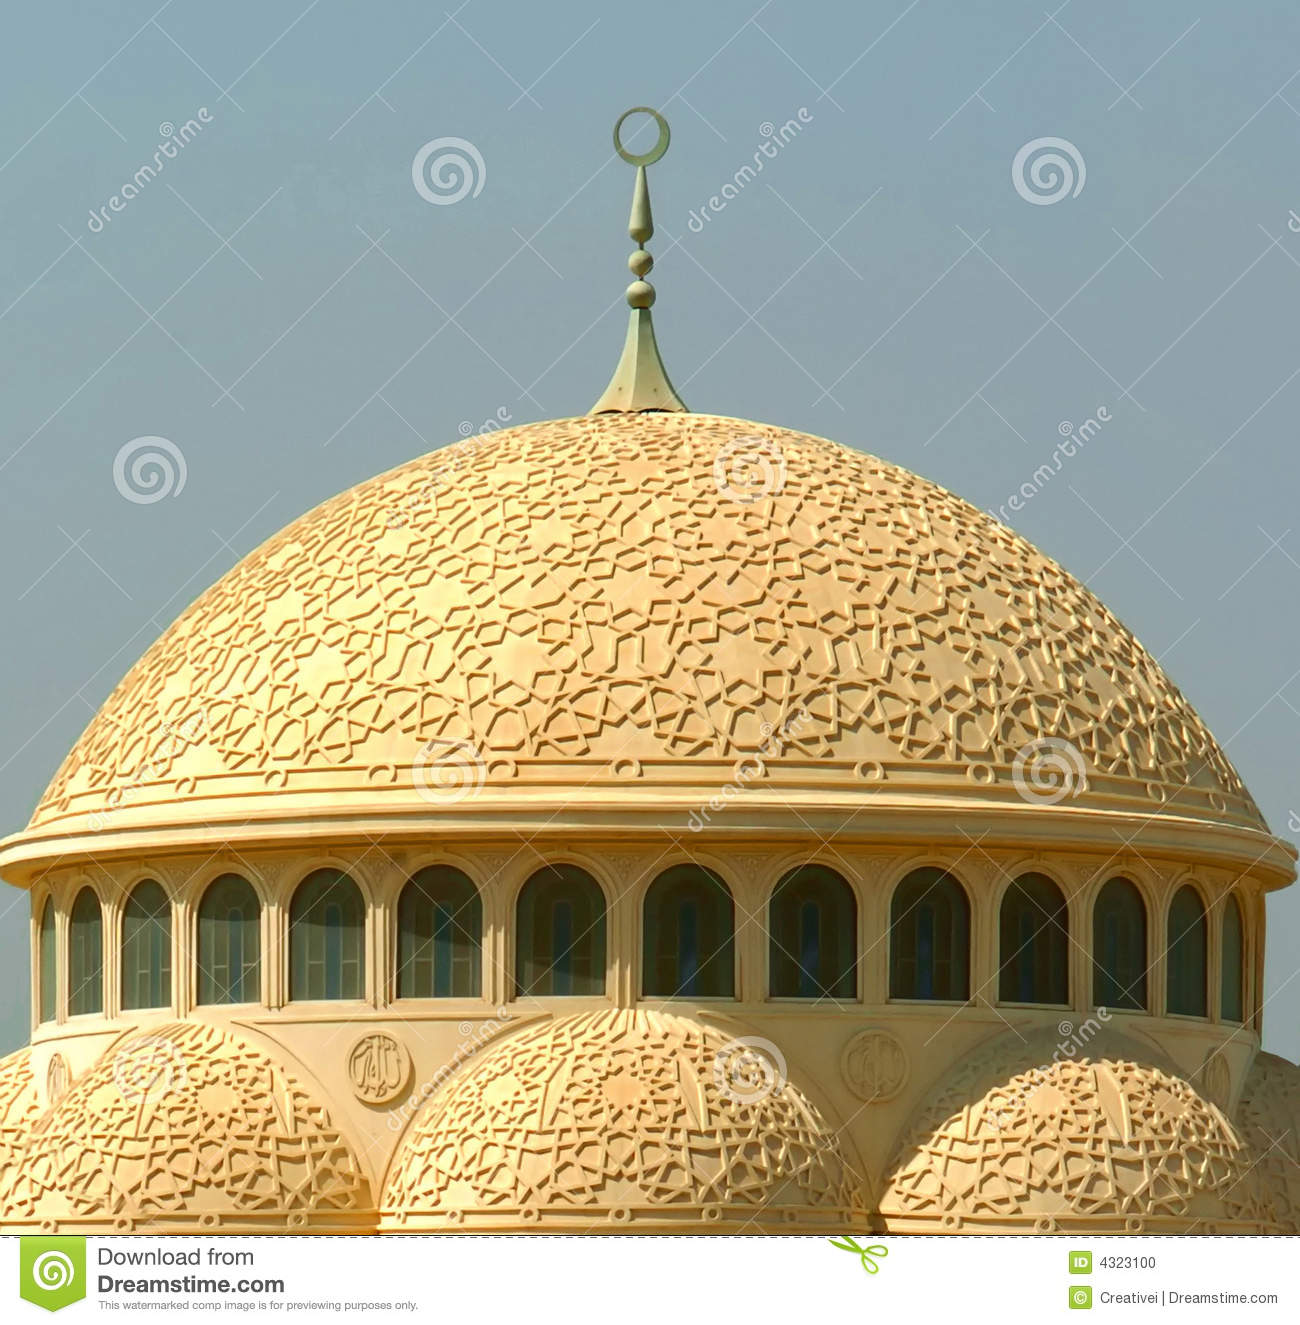 mosque-dome-4323100.jpg